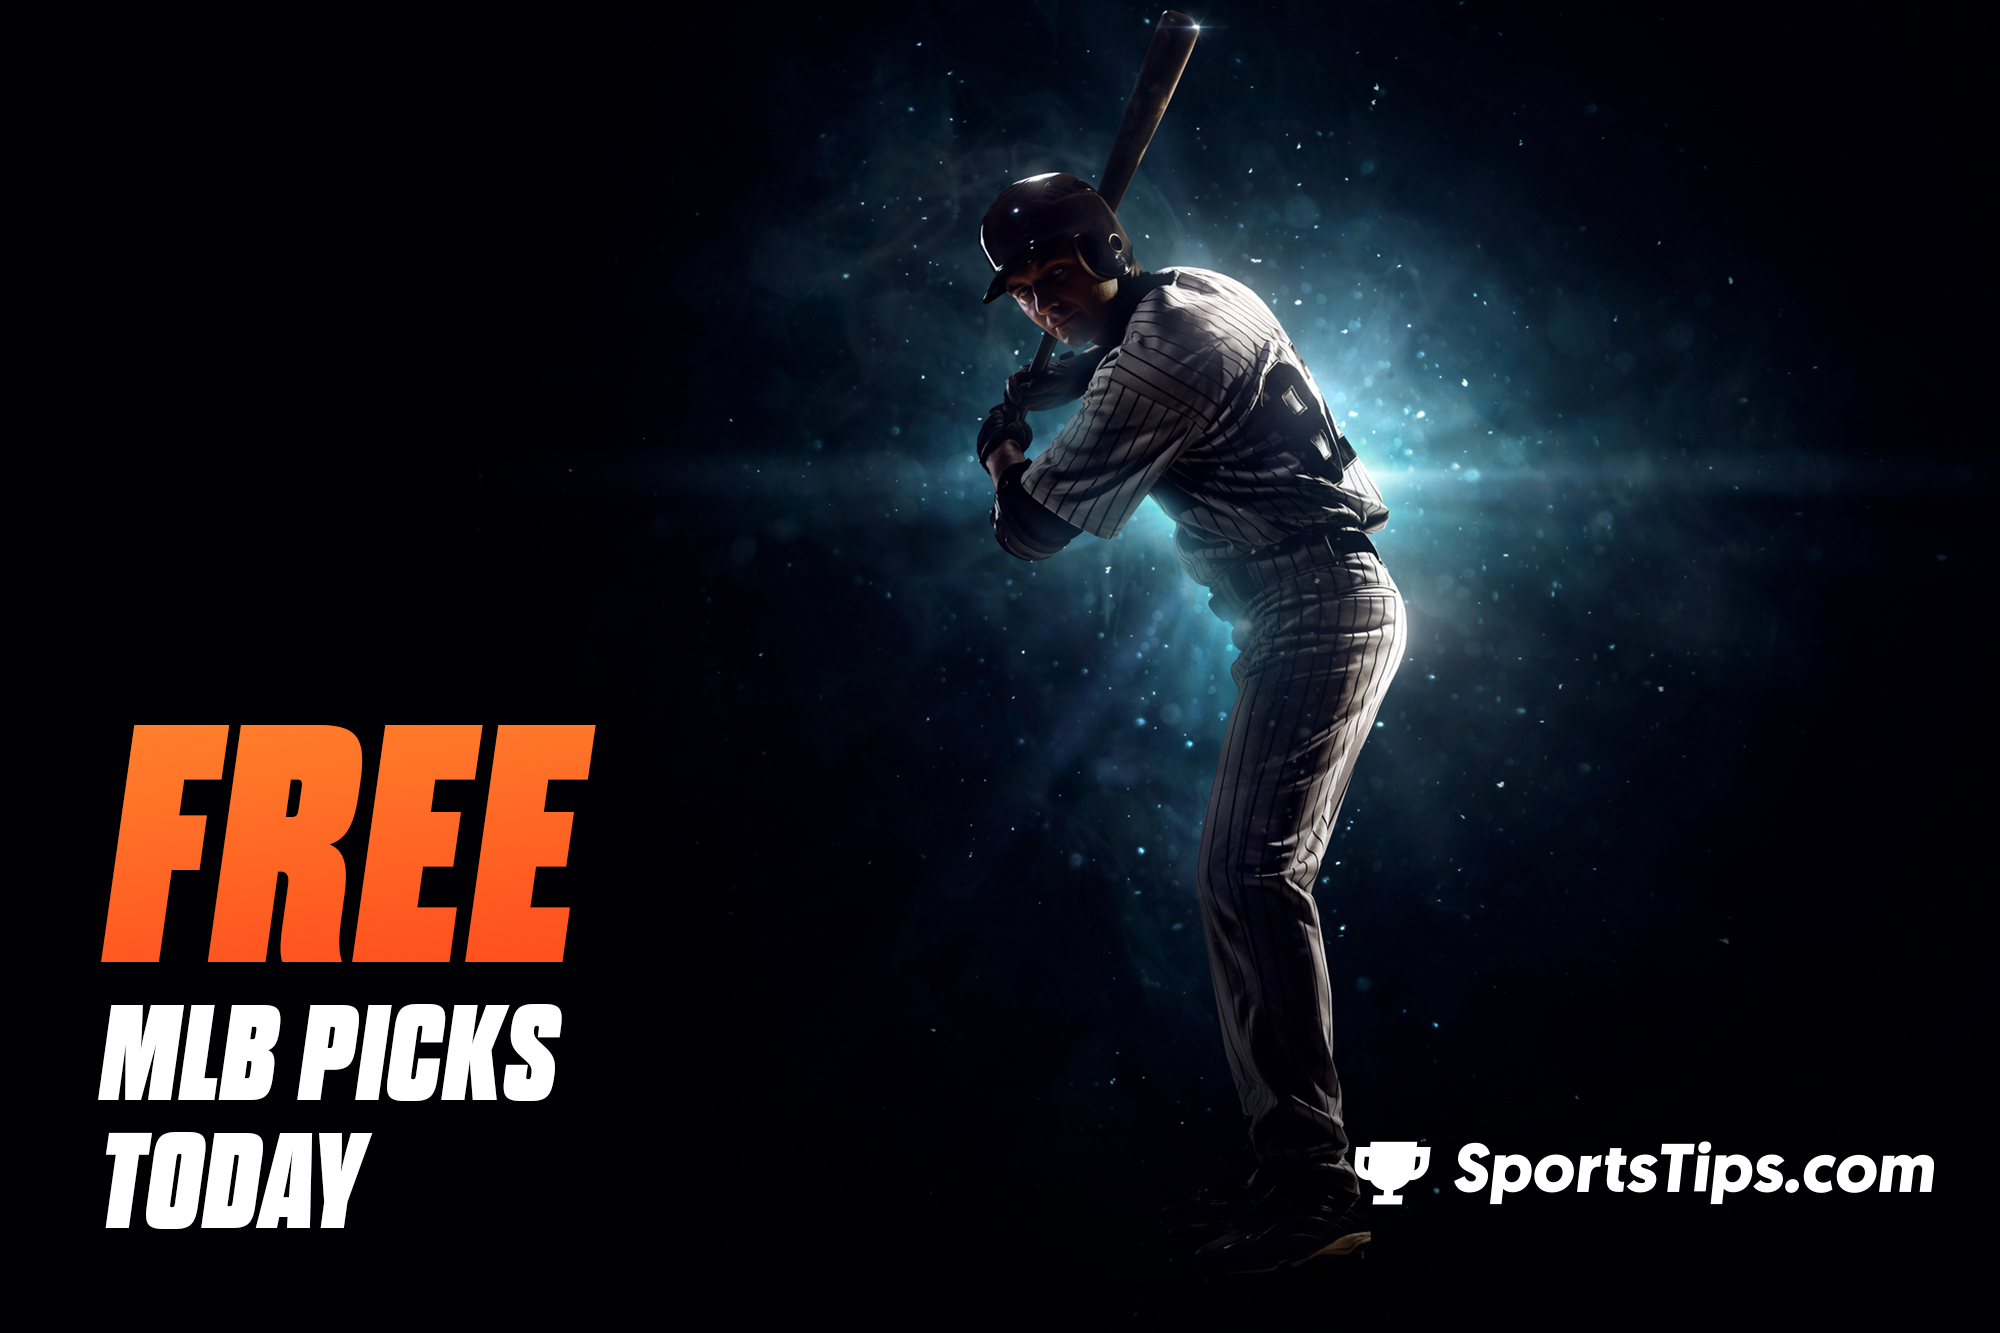 Free MLB Picks Today for Saturday, April 10th, 2021